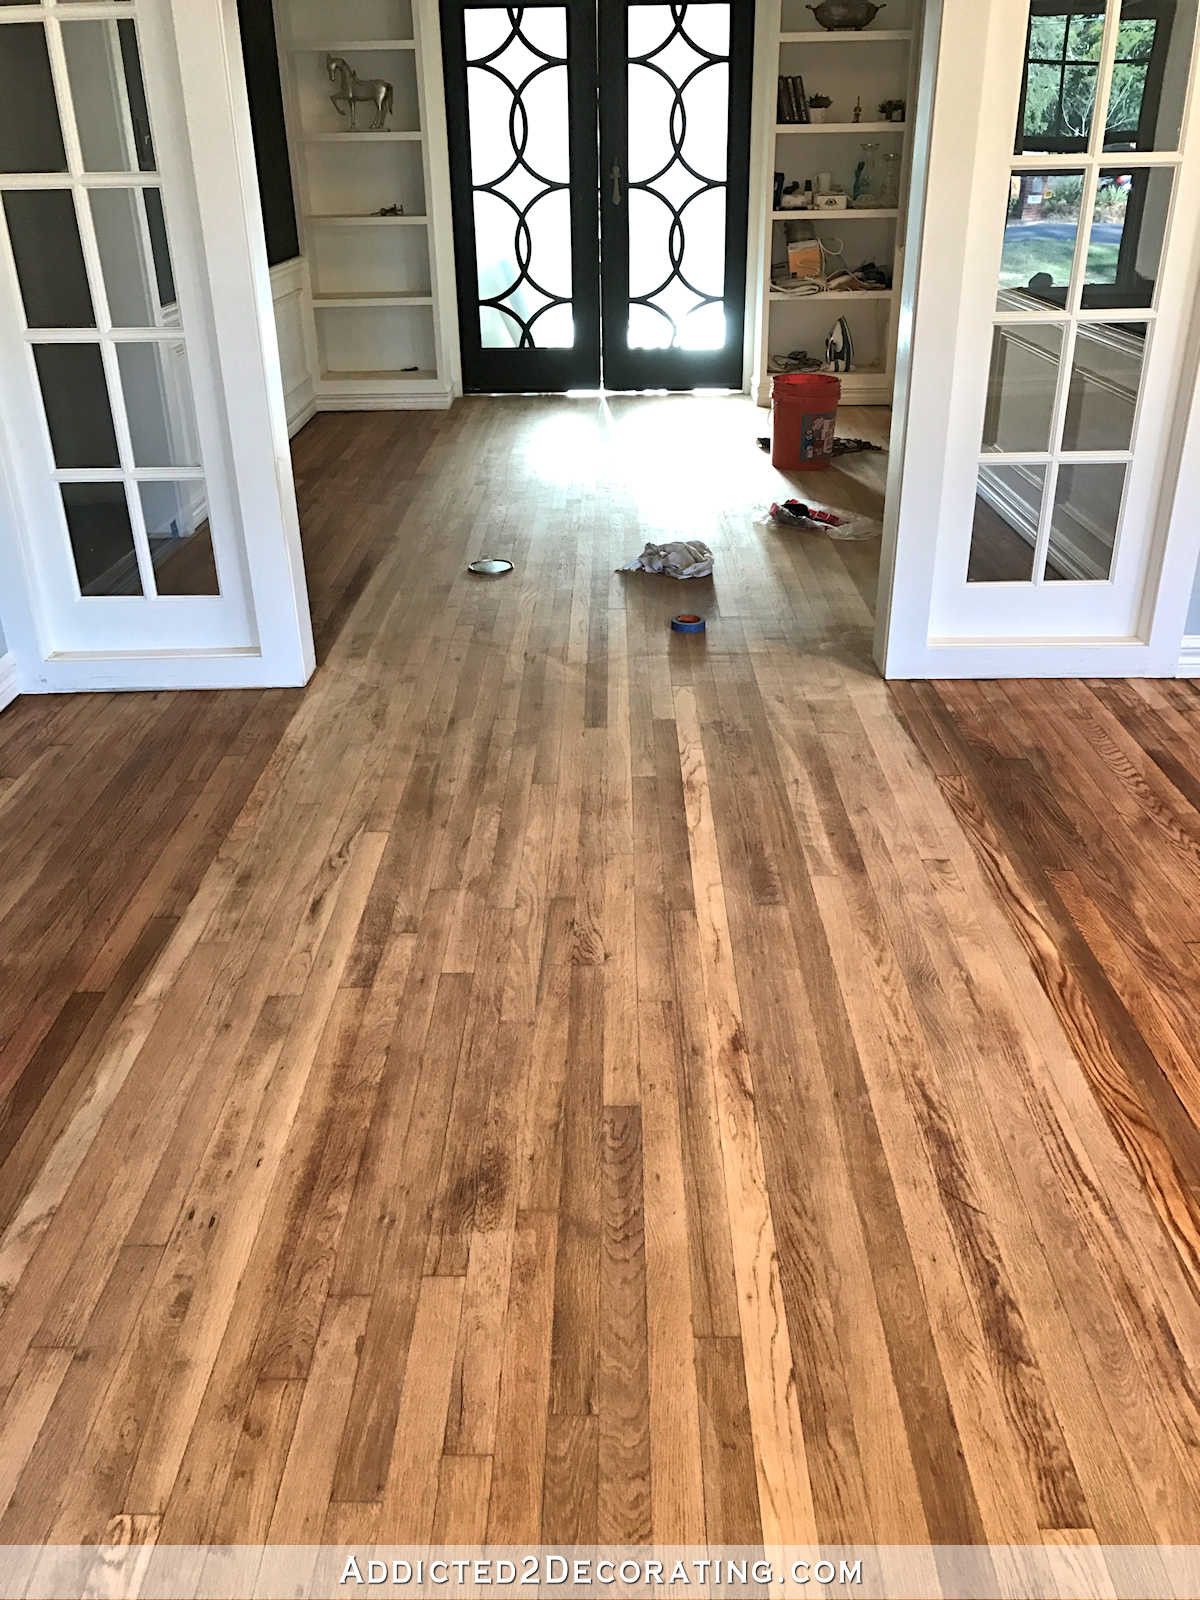 hardwood floor installation denver of adventures in staining my red oak hardwood floors products process regarding staining red oak hardwood floors 5 music room wood conditioner